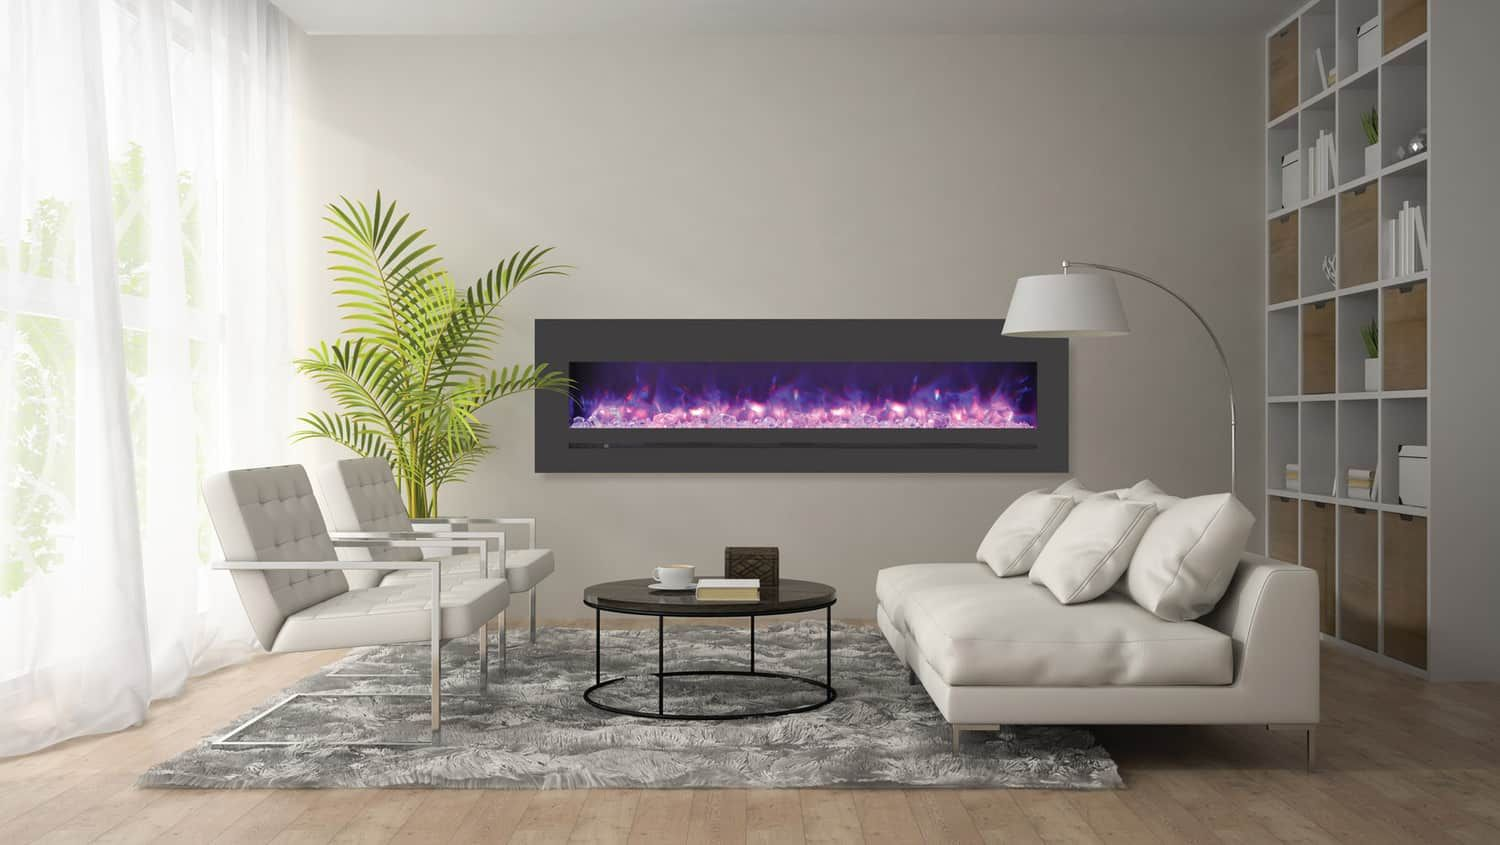 Sierra Flame Wm Fml 72 7823 Stl Linear Fireplace With Images